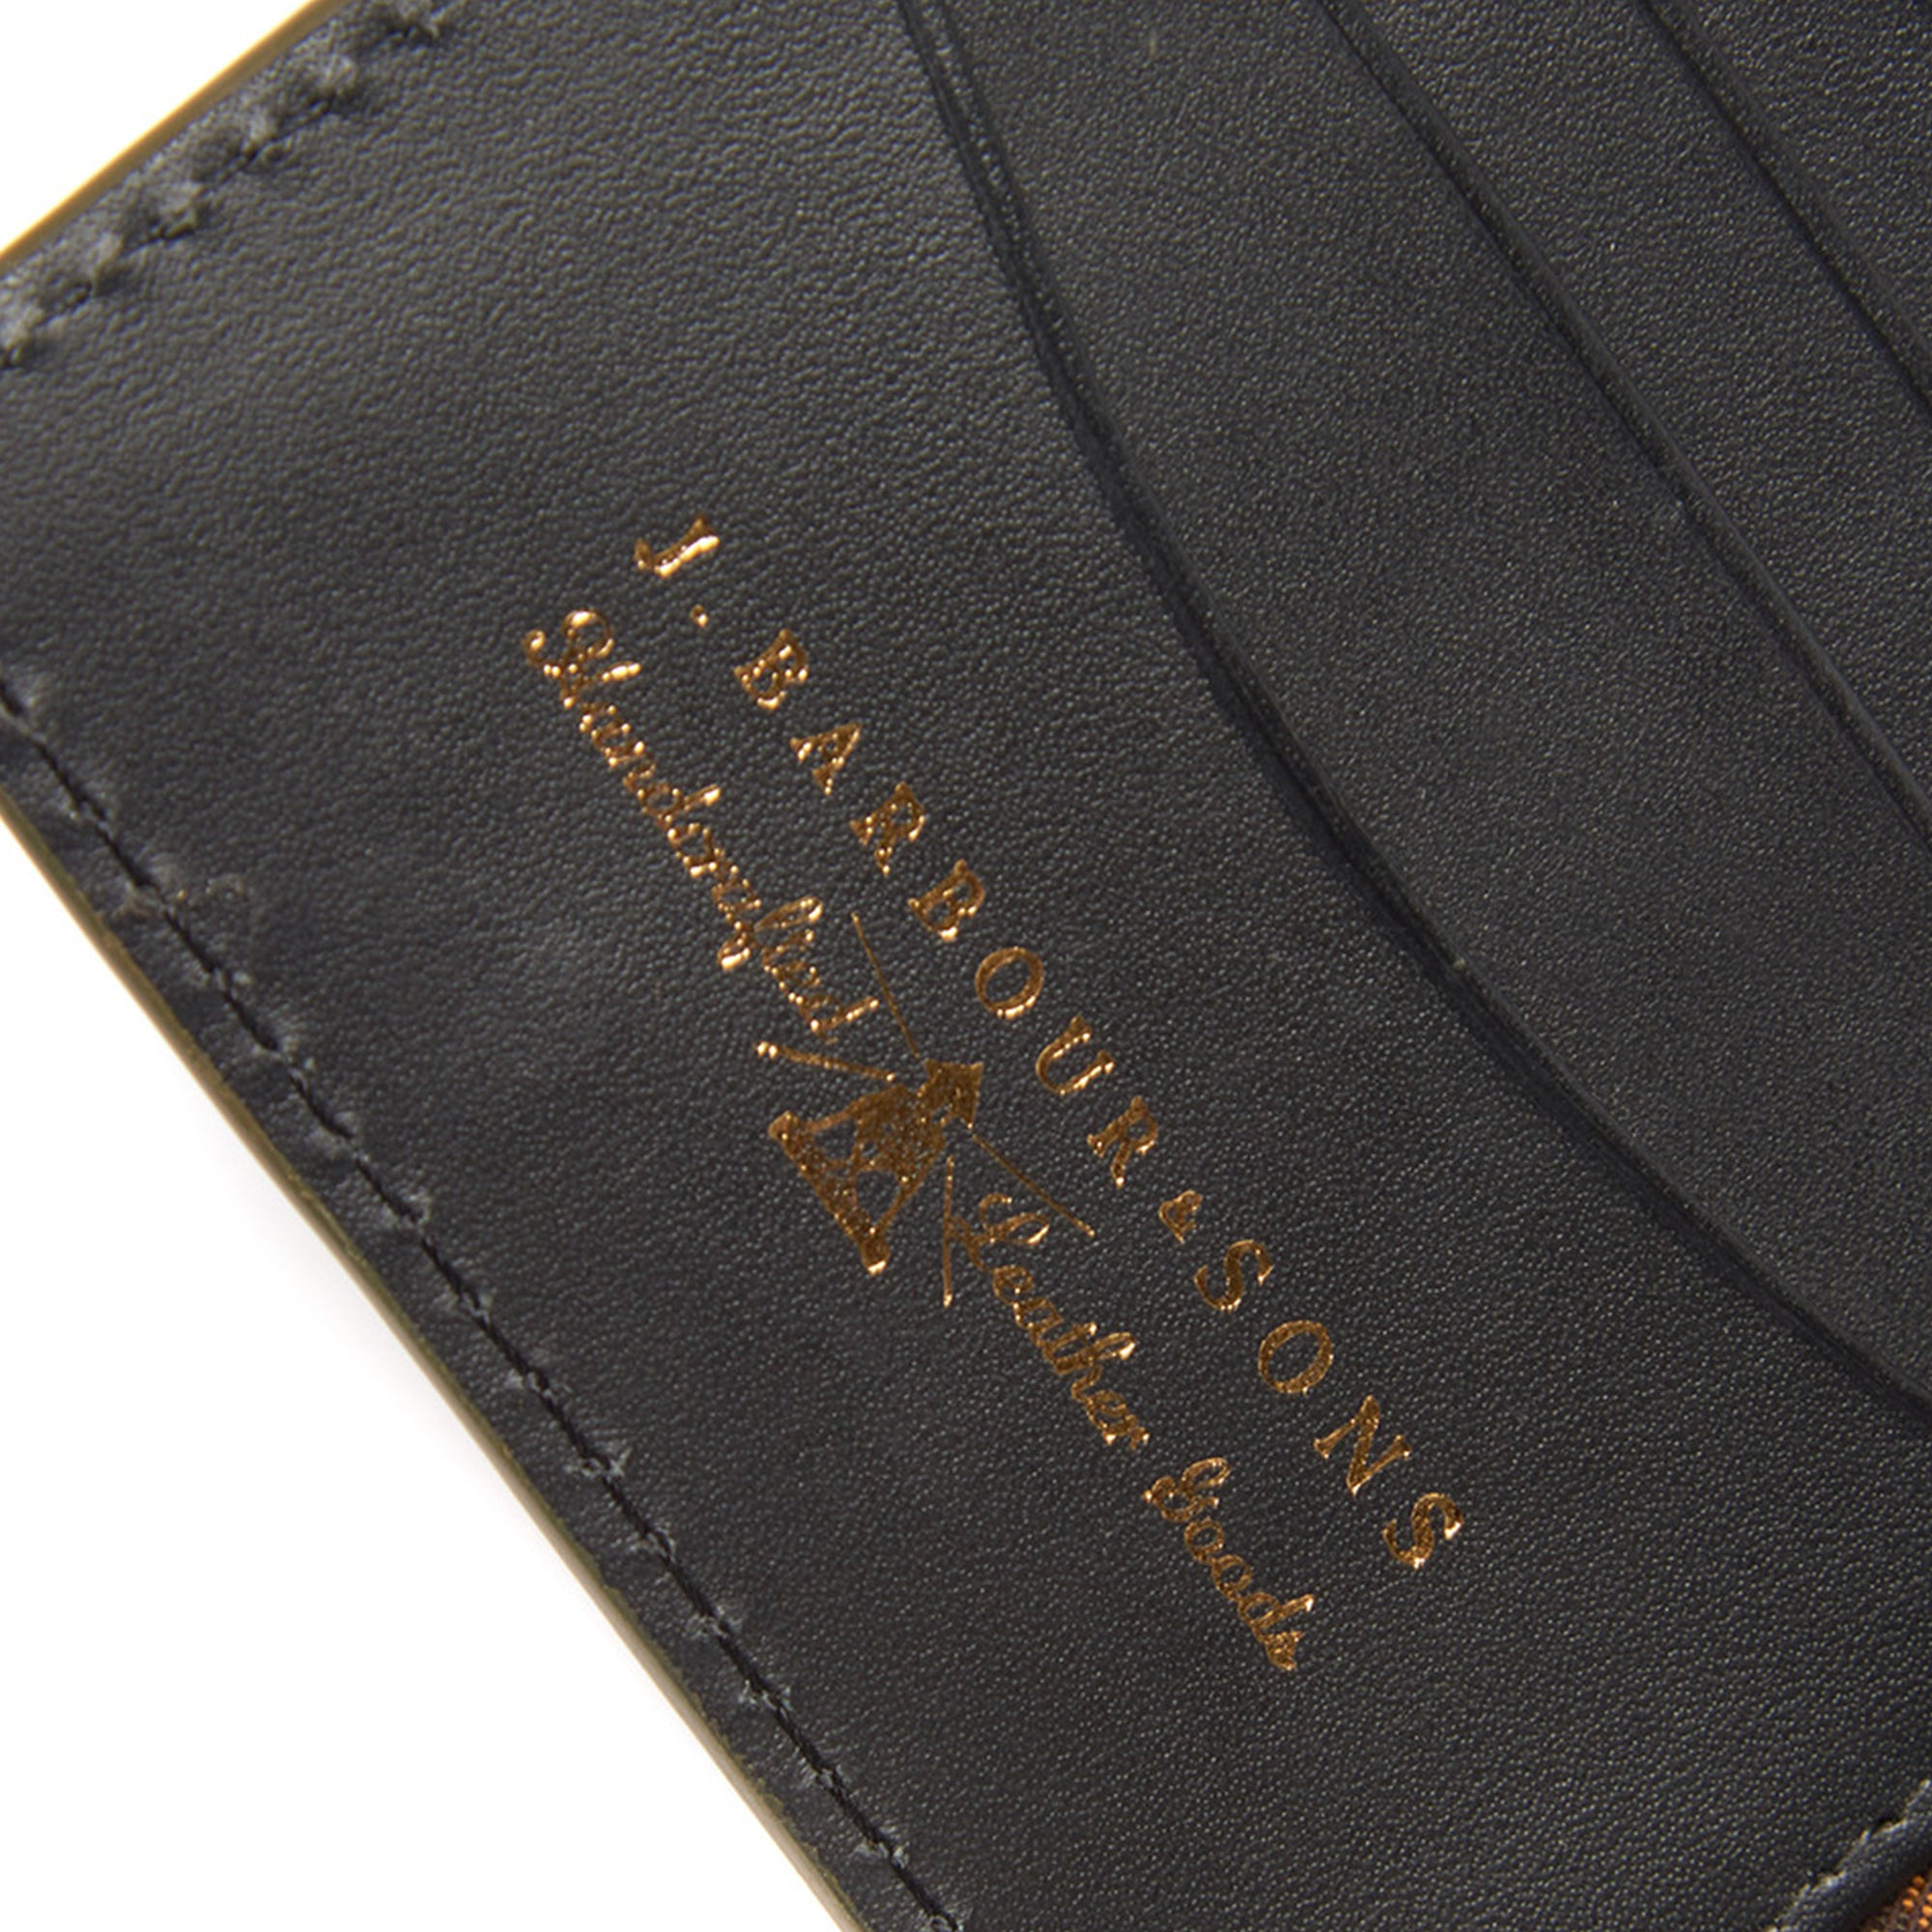 ddbb9de8 Barbour Grain Leather Wallet - Black - Arena Menswear